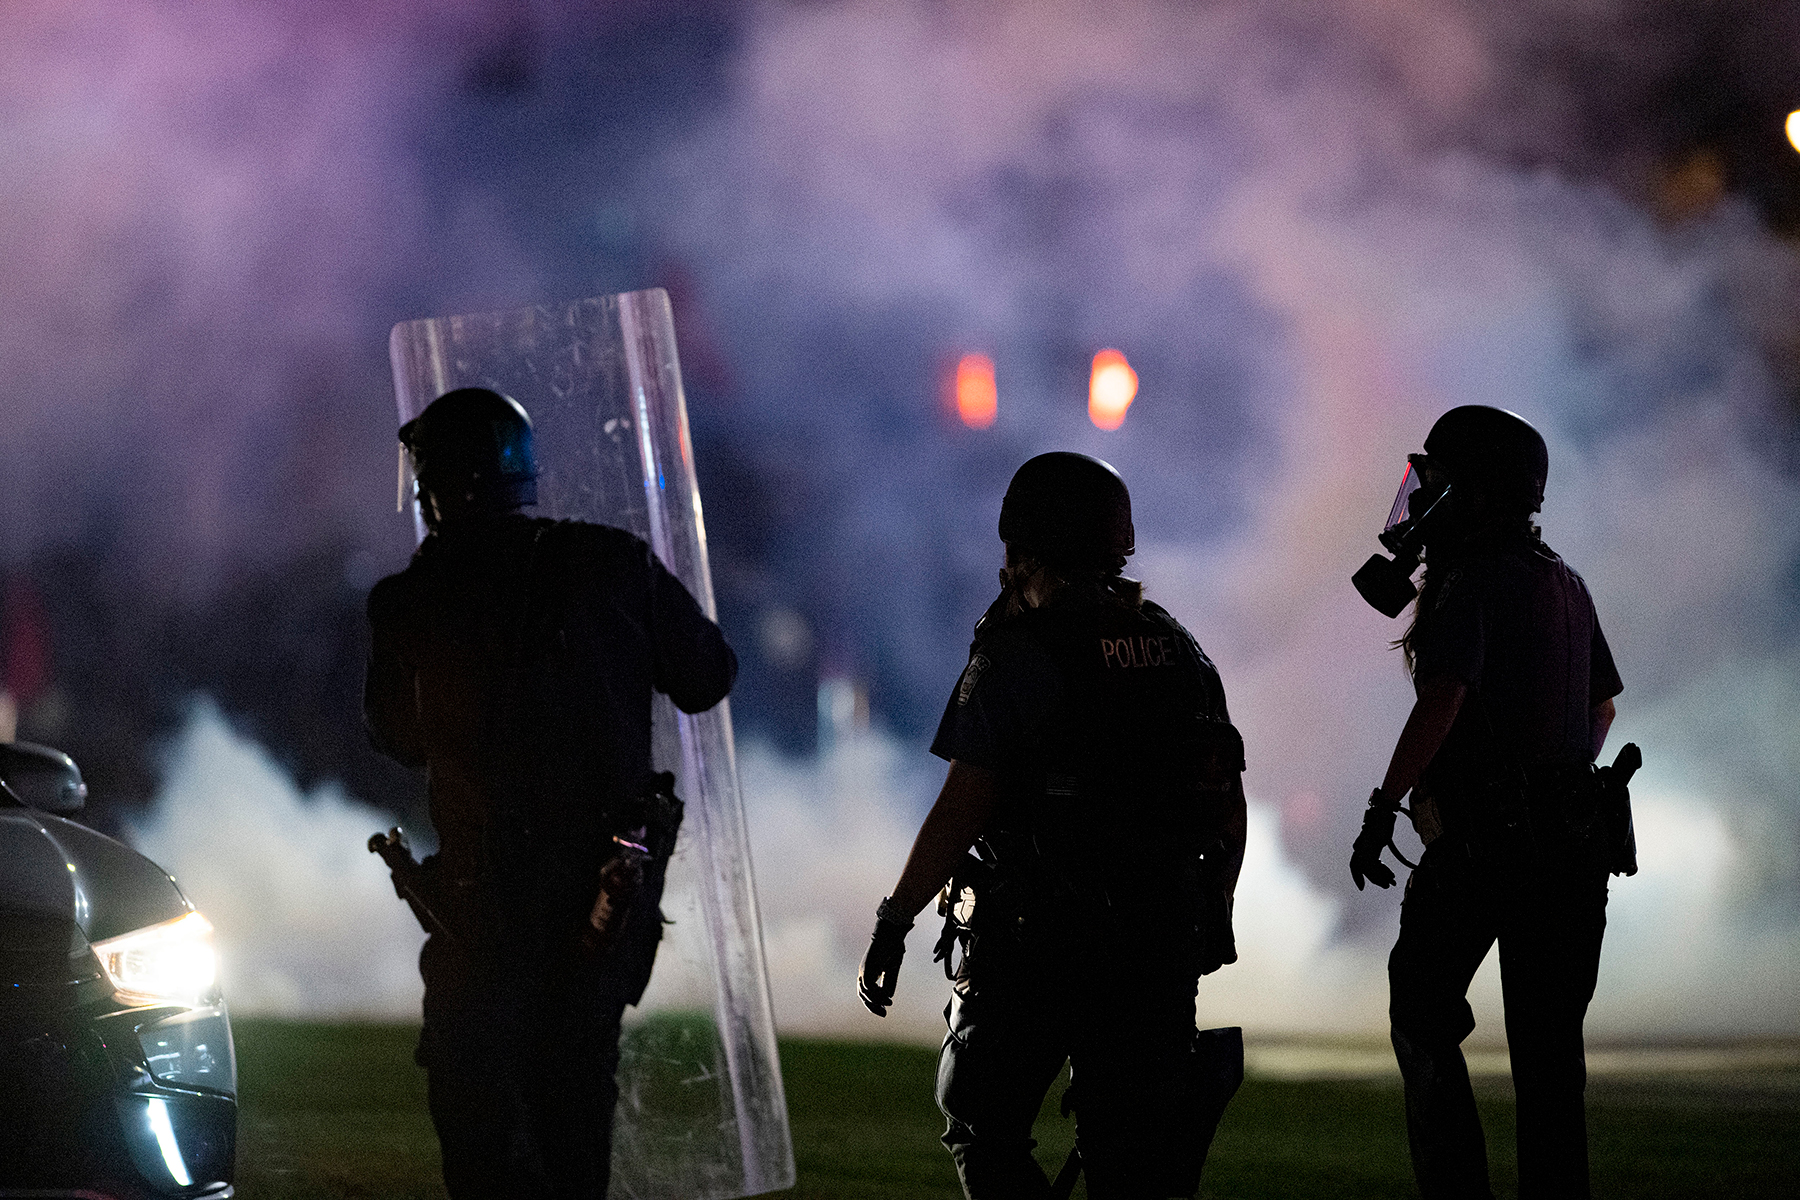 Police march through the tear gas toward the crowd of protesters blocking Nevada Avenue Saturday night, May 30, 2020, in Colorado Springs, Colo. Protests have been erupting all over the country after George Floyd died on Memorial Day in police custody in Minneapolis. (Christian Murdock/The Gazette via AP)